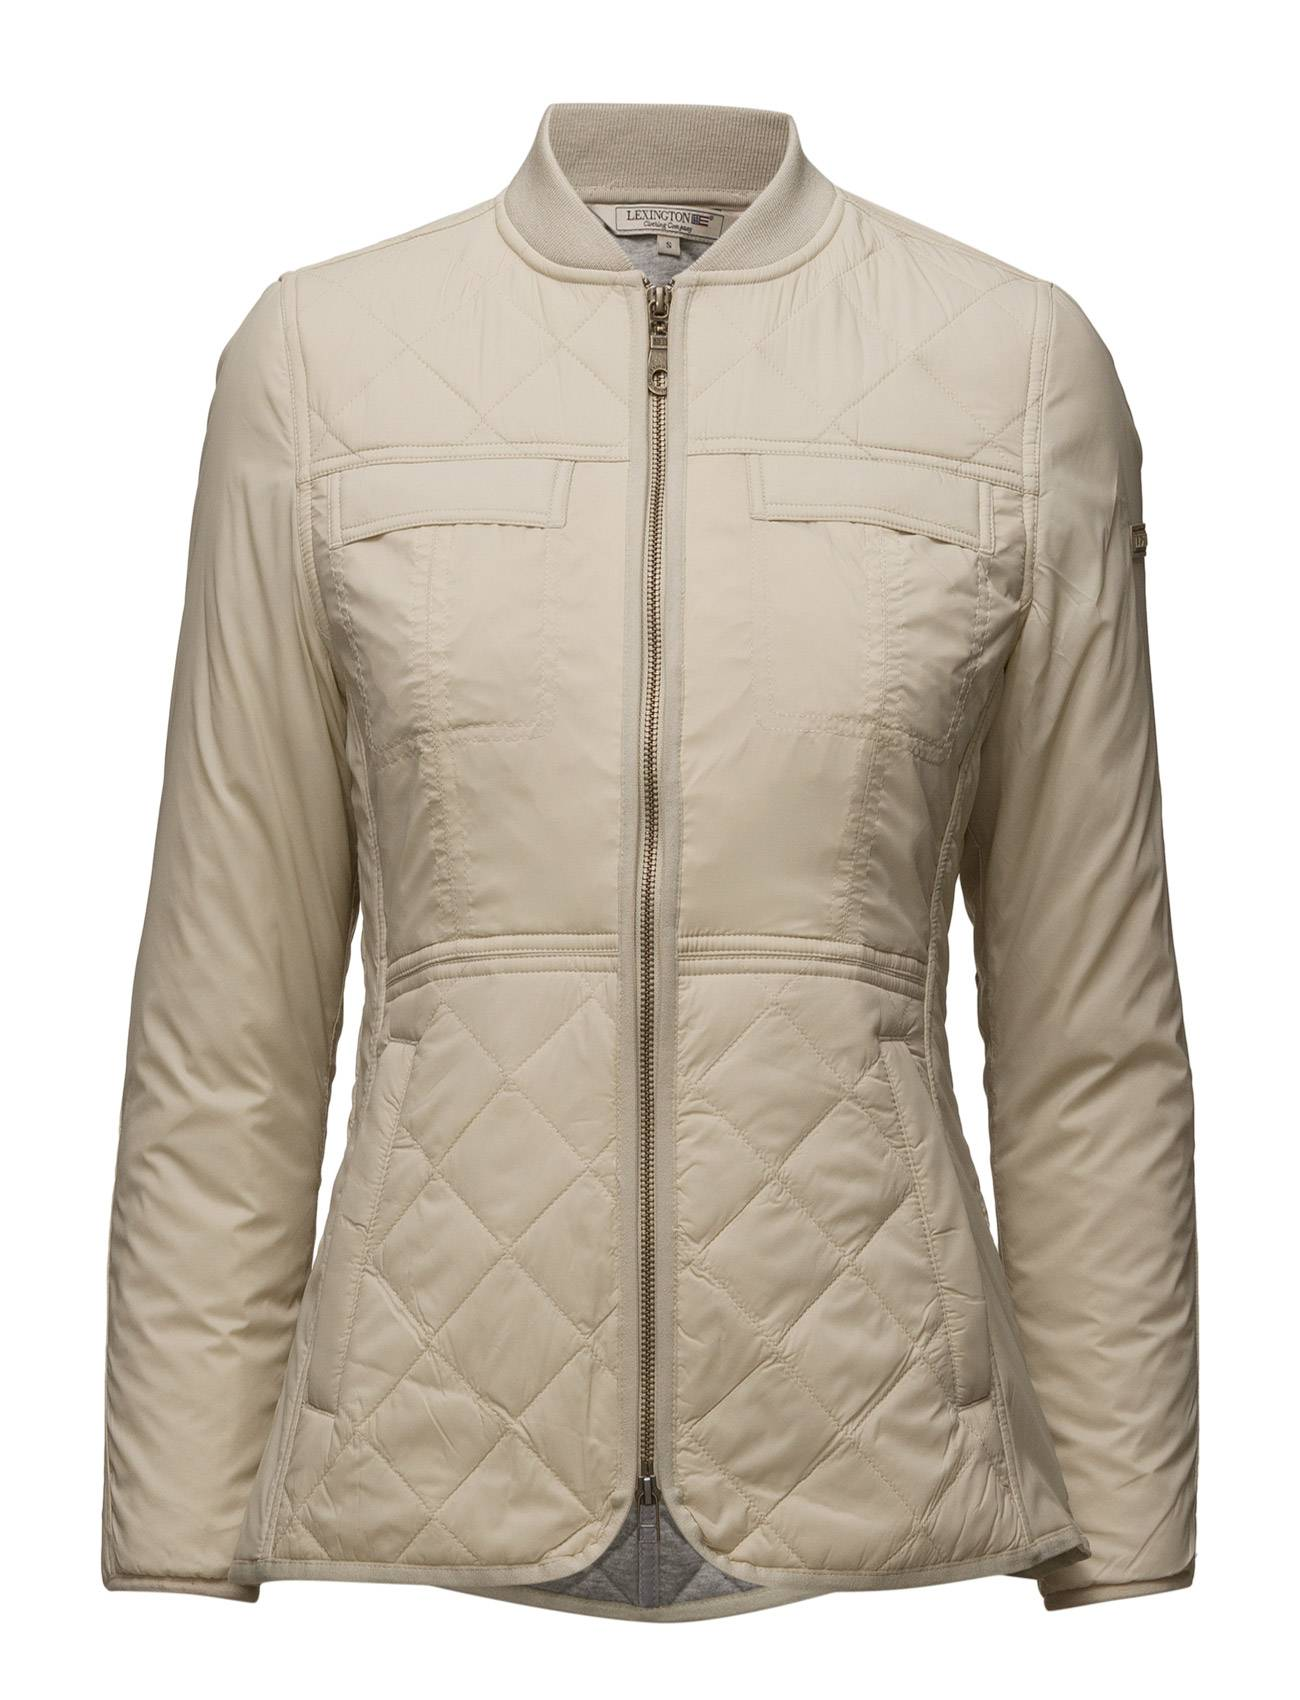 Lexington Company Ivy Quilted Jacket